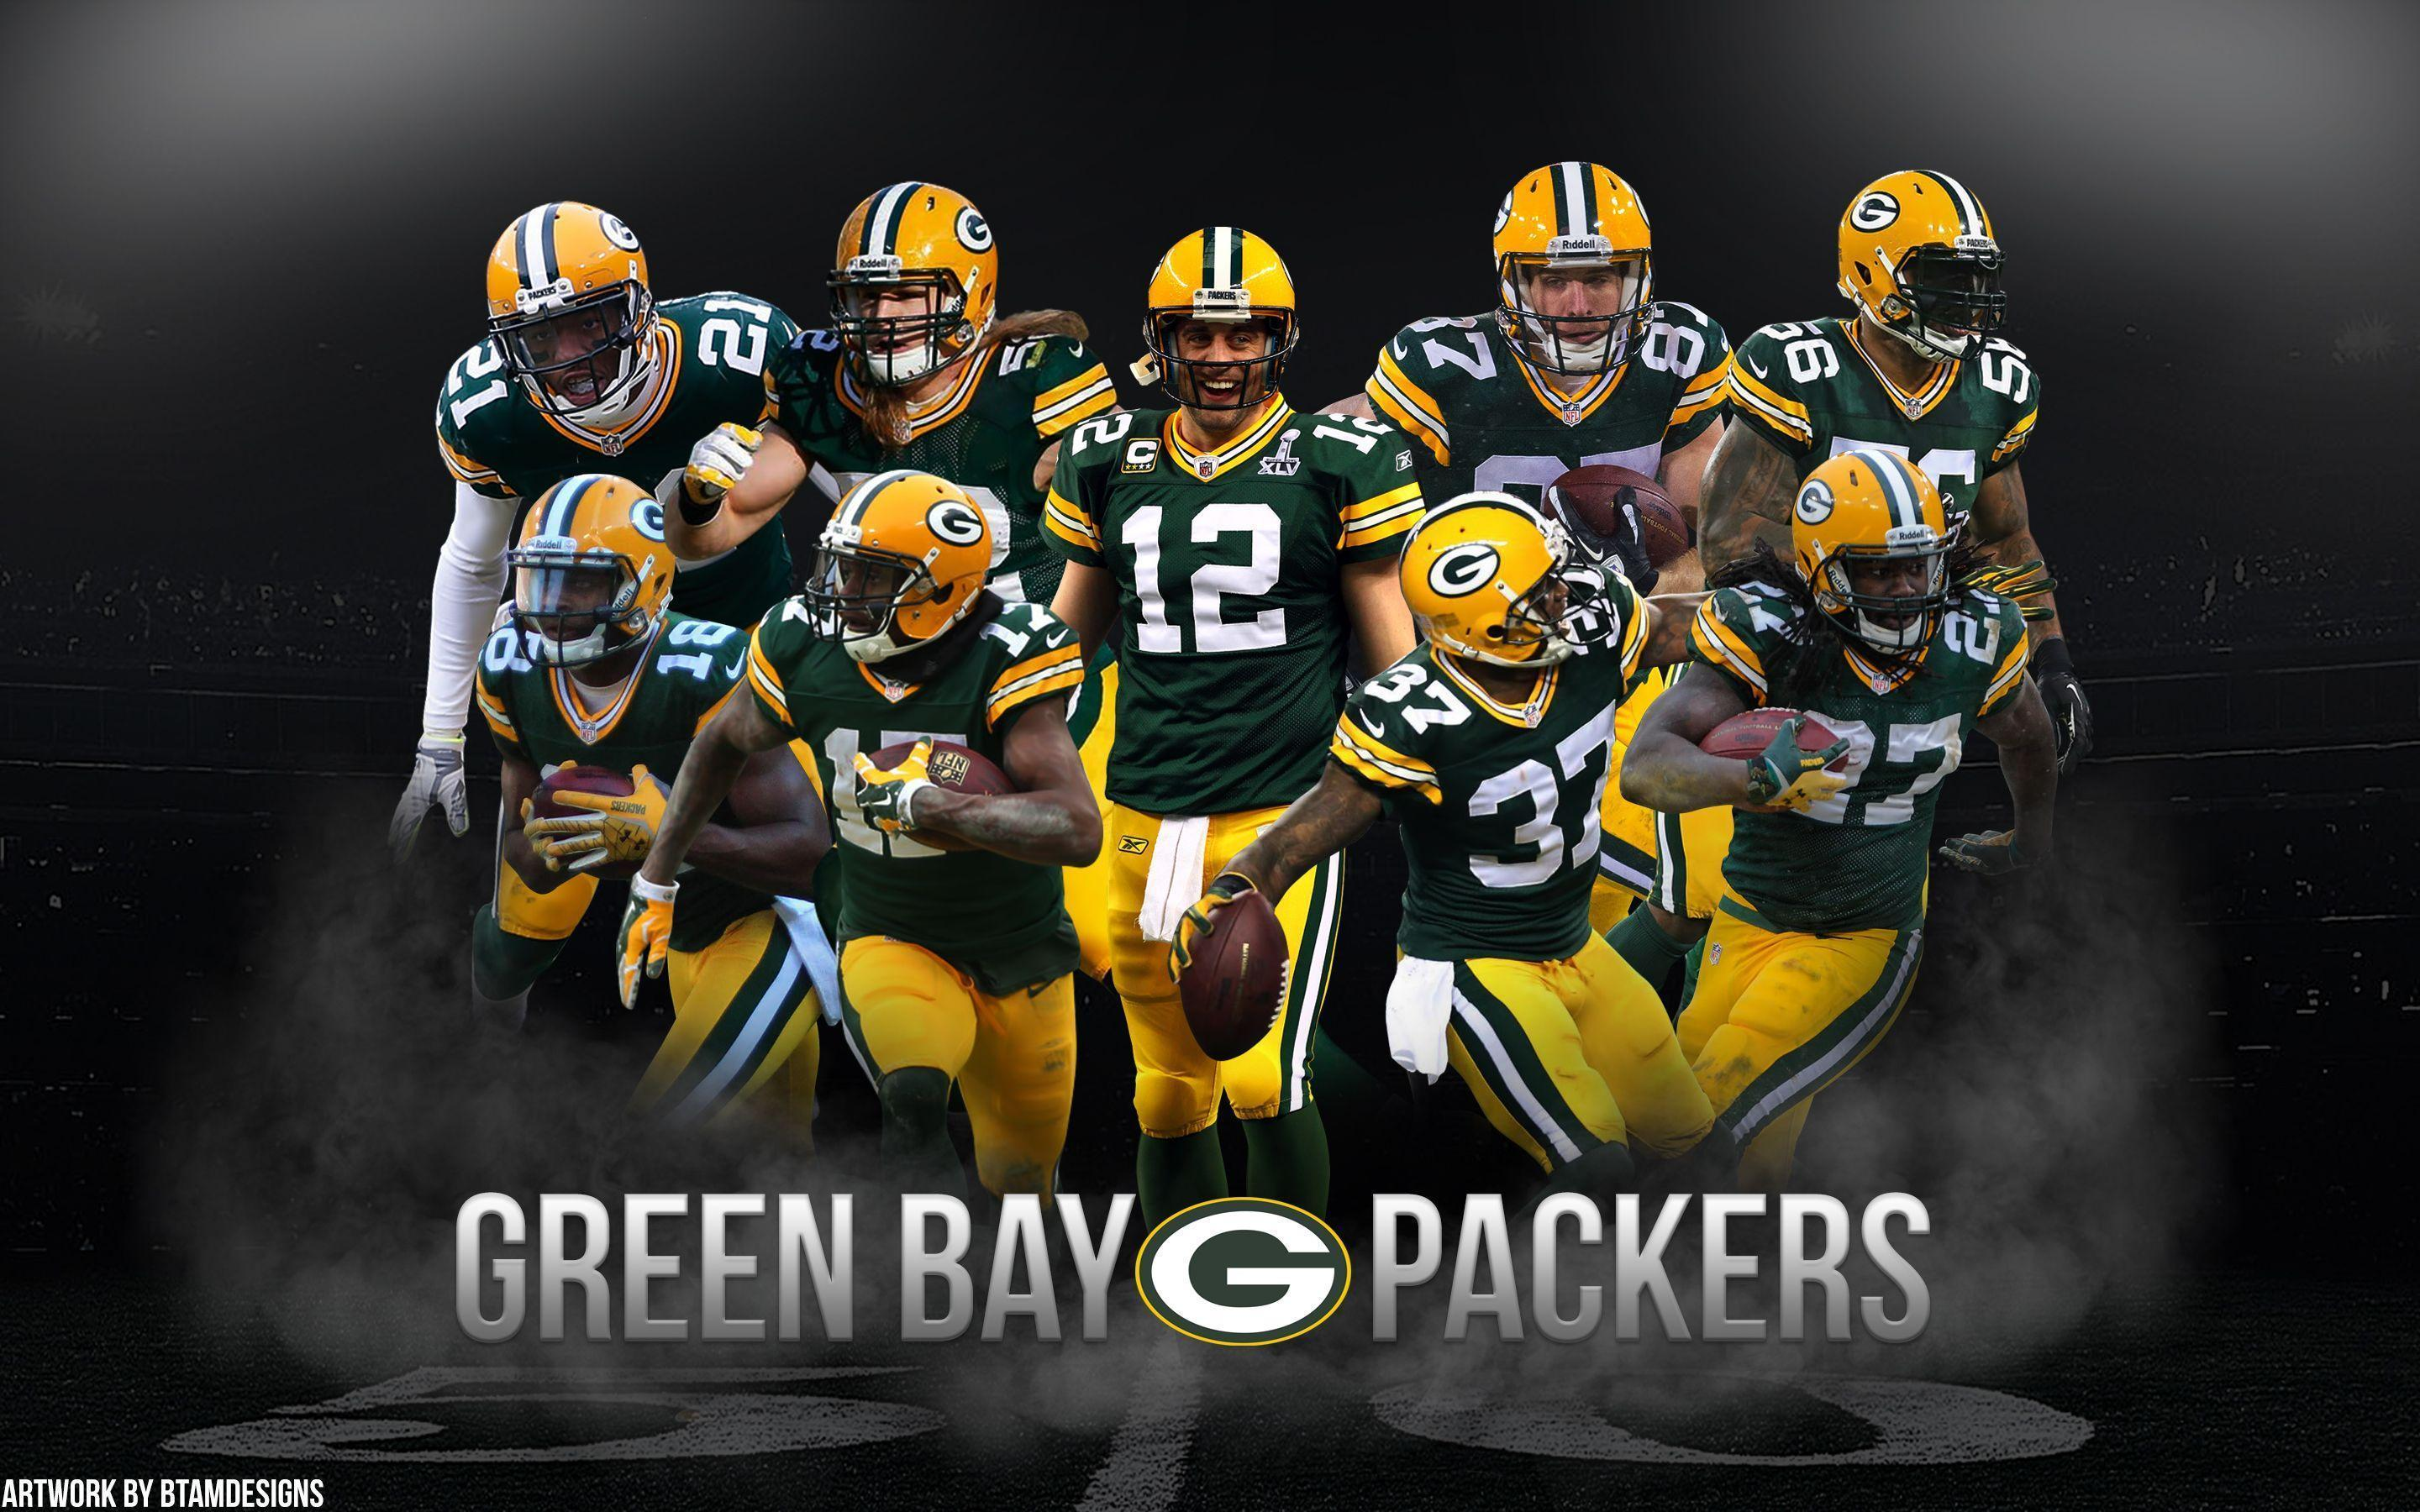 Green Bay Packers Wallpapers 2880x1800